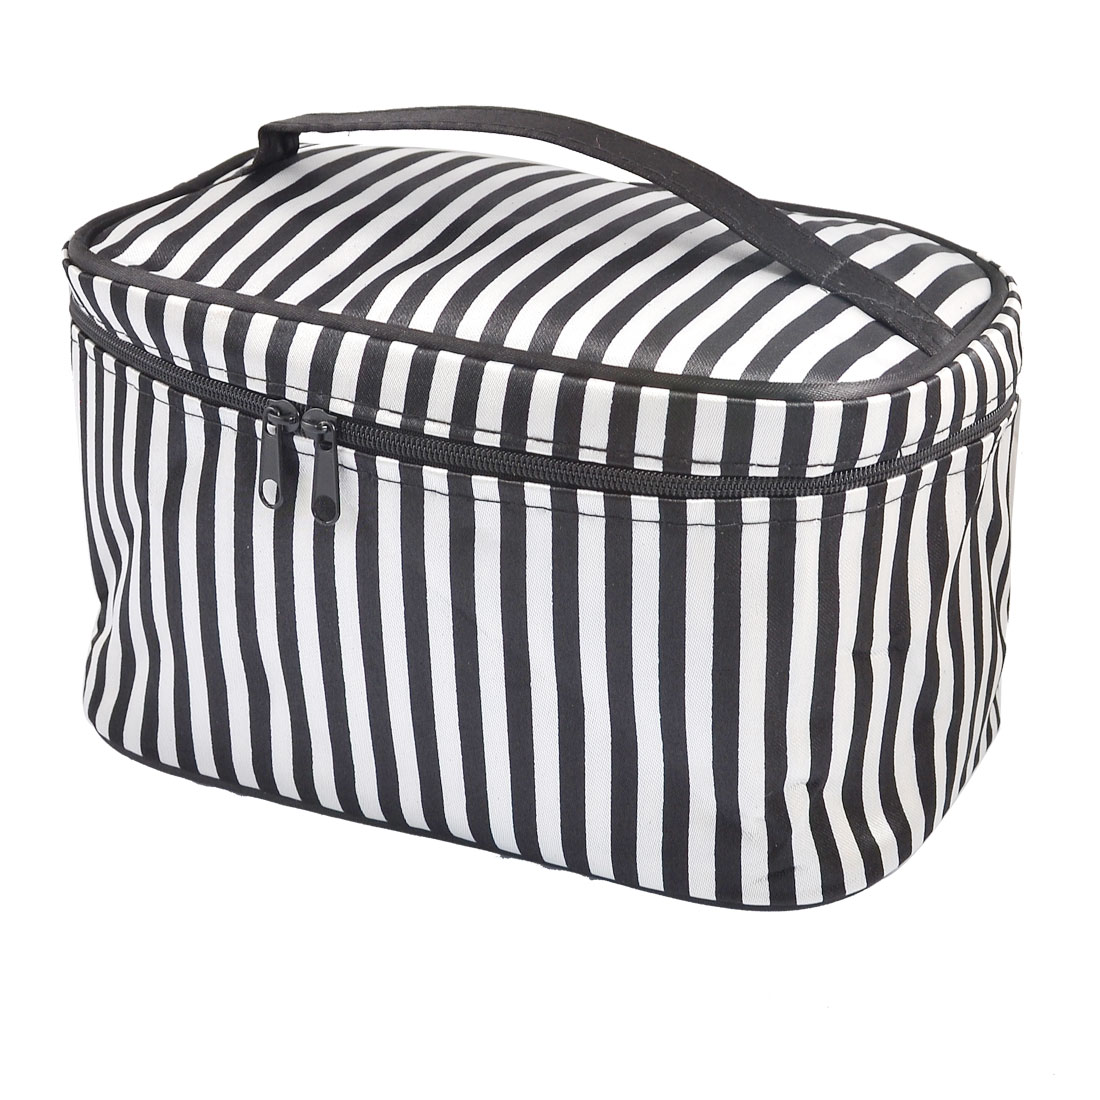 Black Stripe Pattern Zip up Closure Rectangle Cosmetic Bag for Women